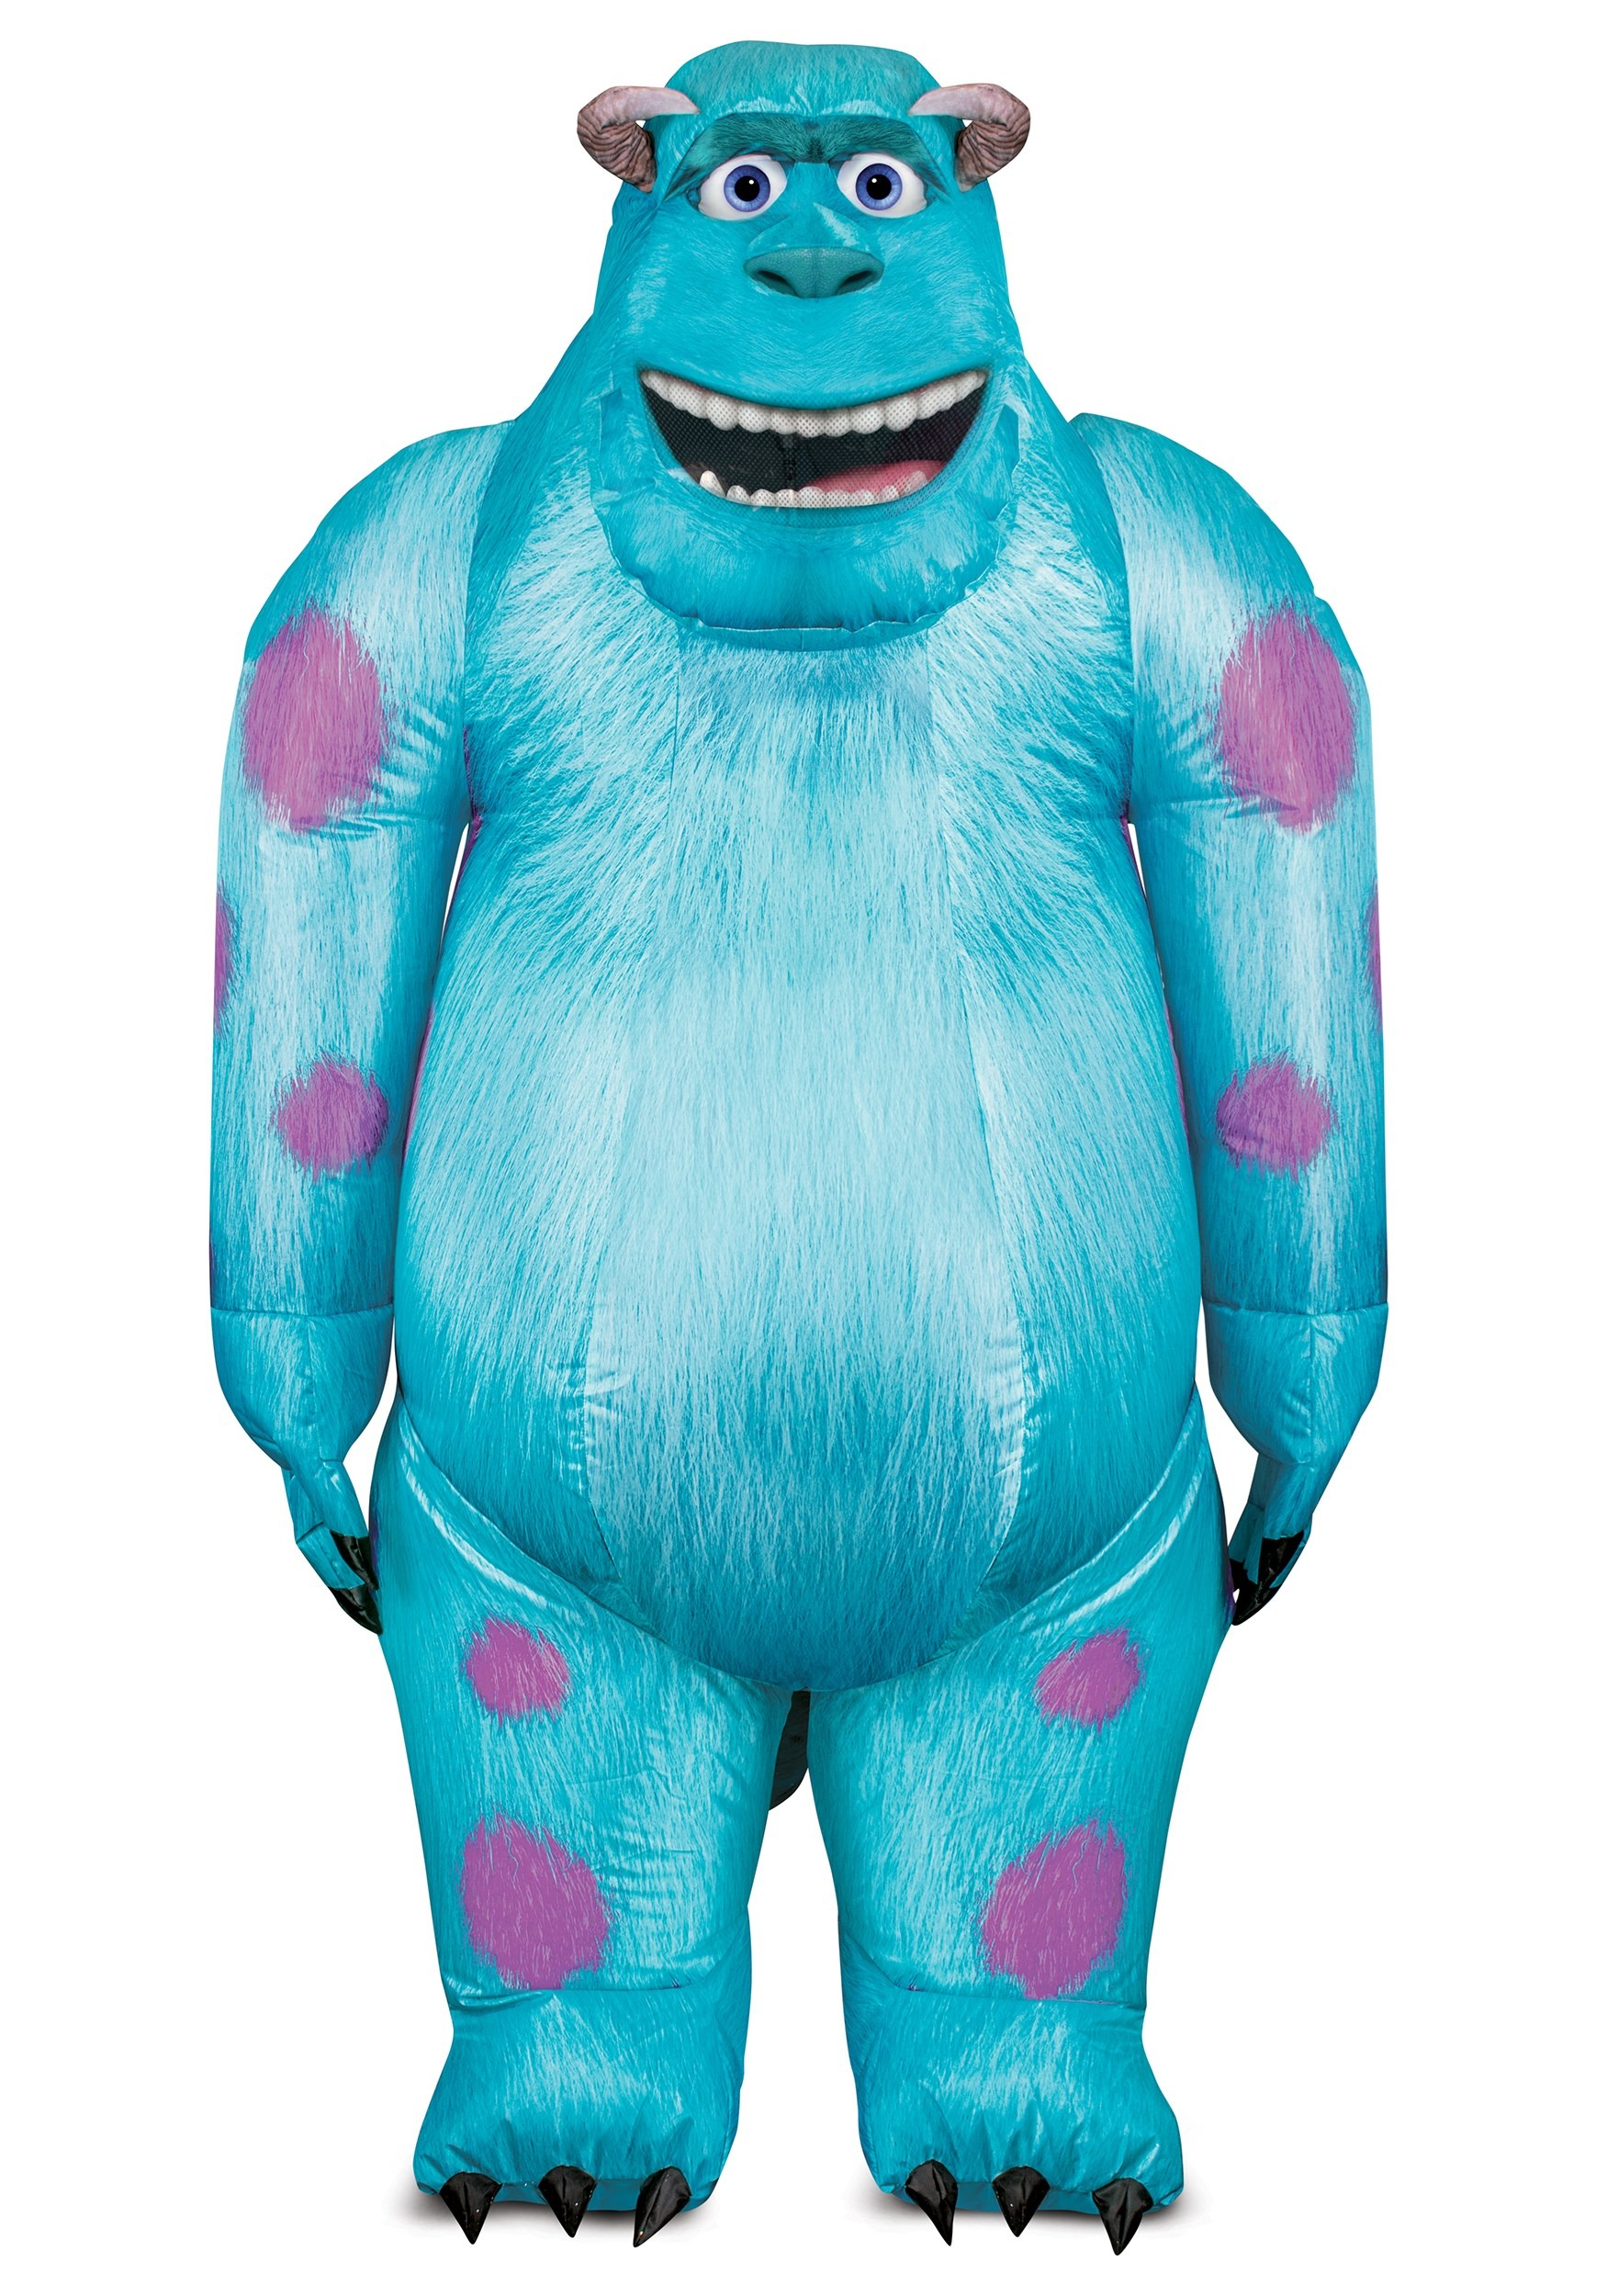 Monsters Inc Sulley Inflatable Costume For Adults